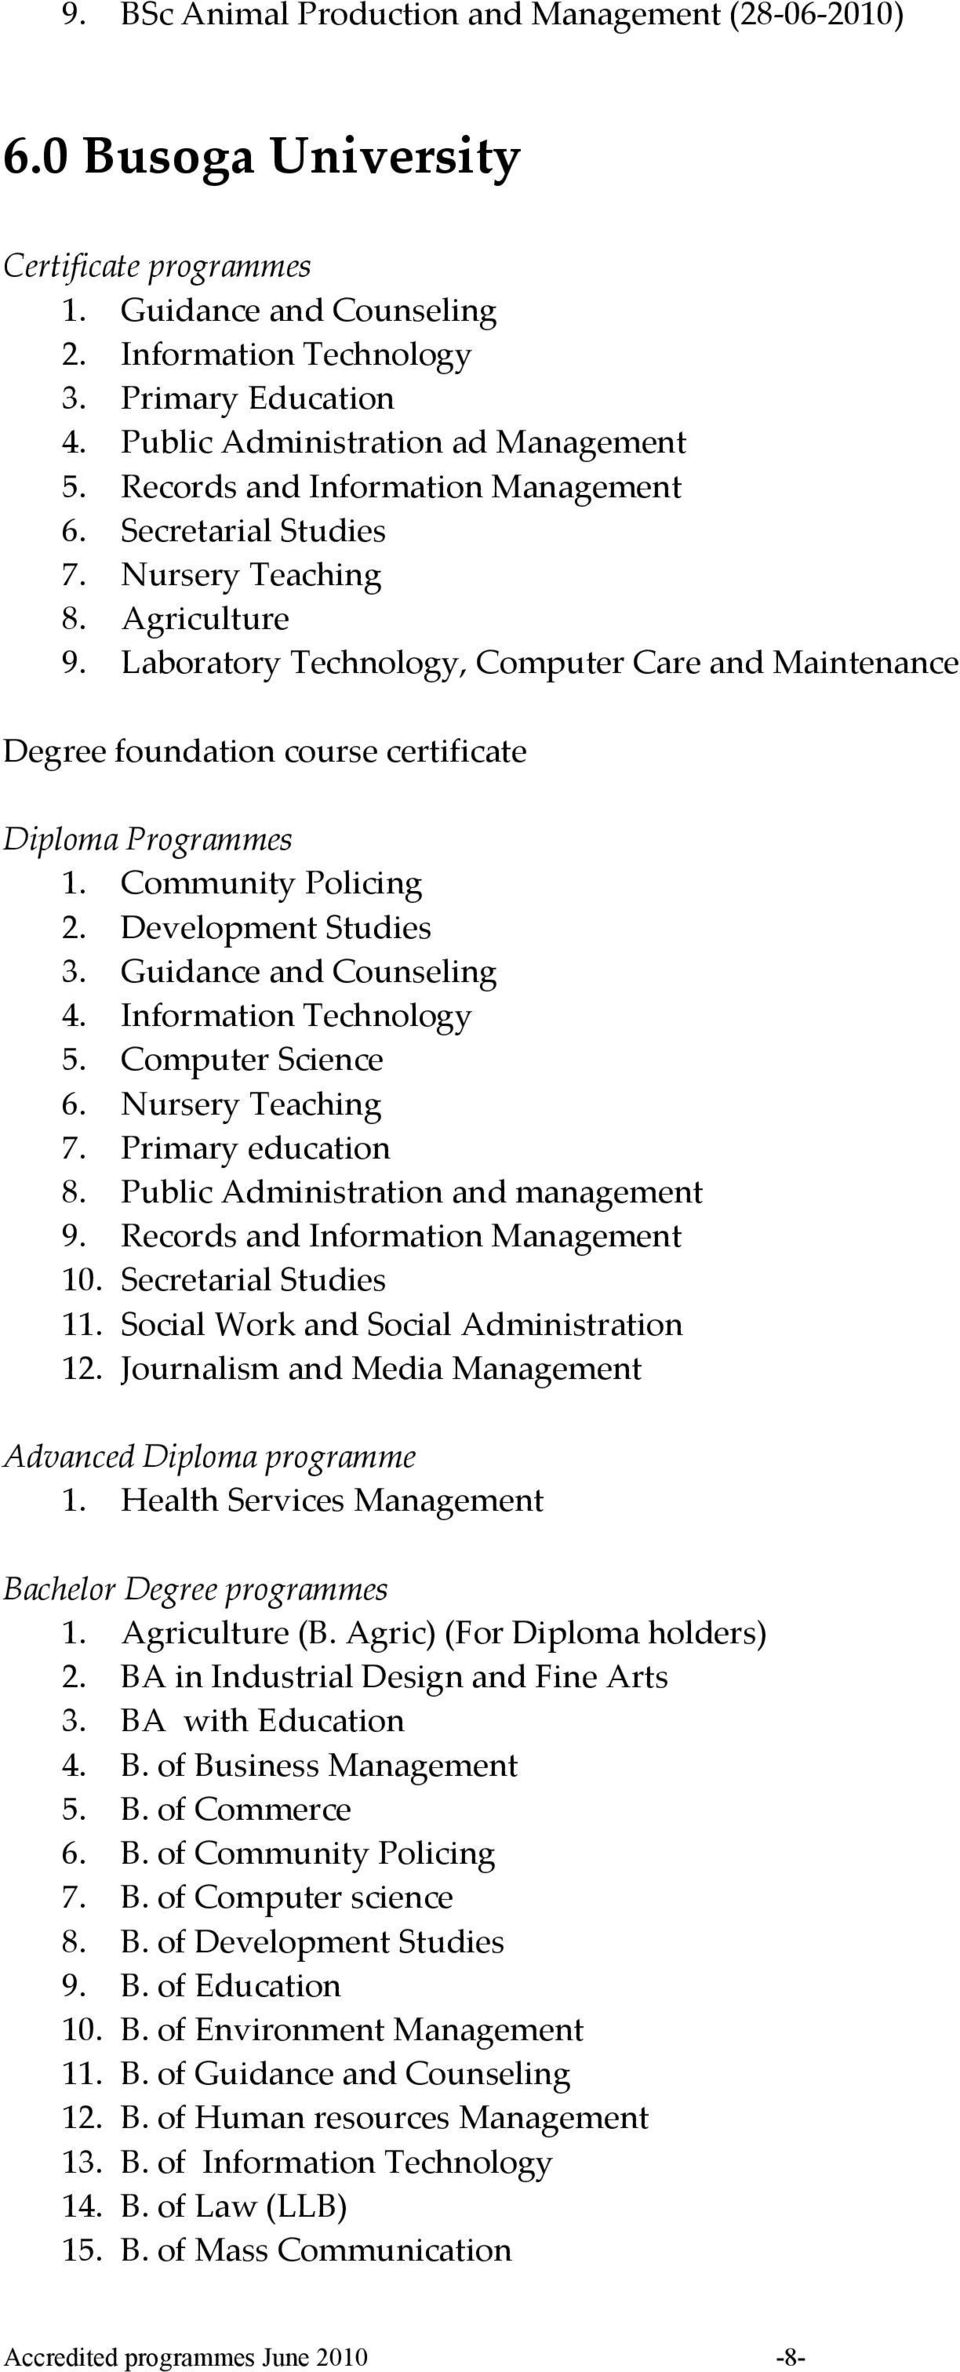 Base of educational work from 2dip